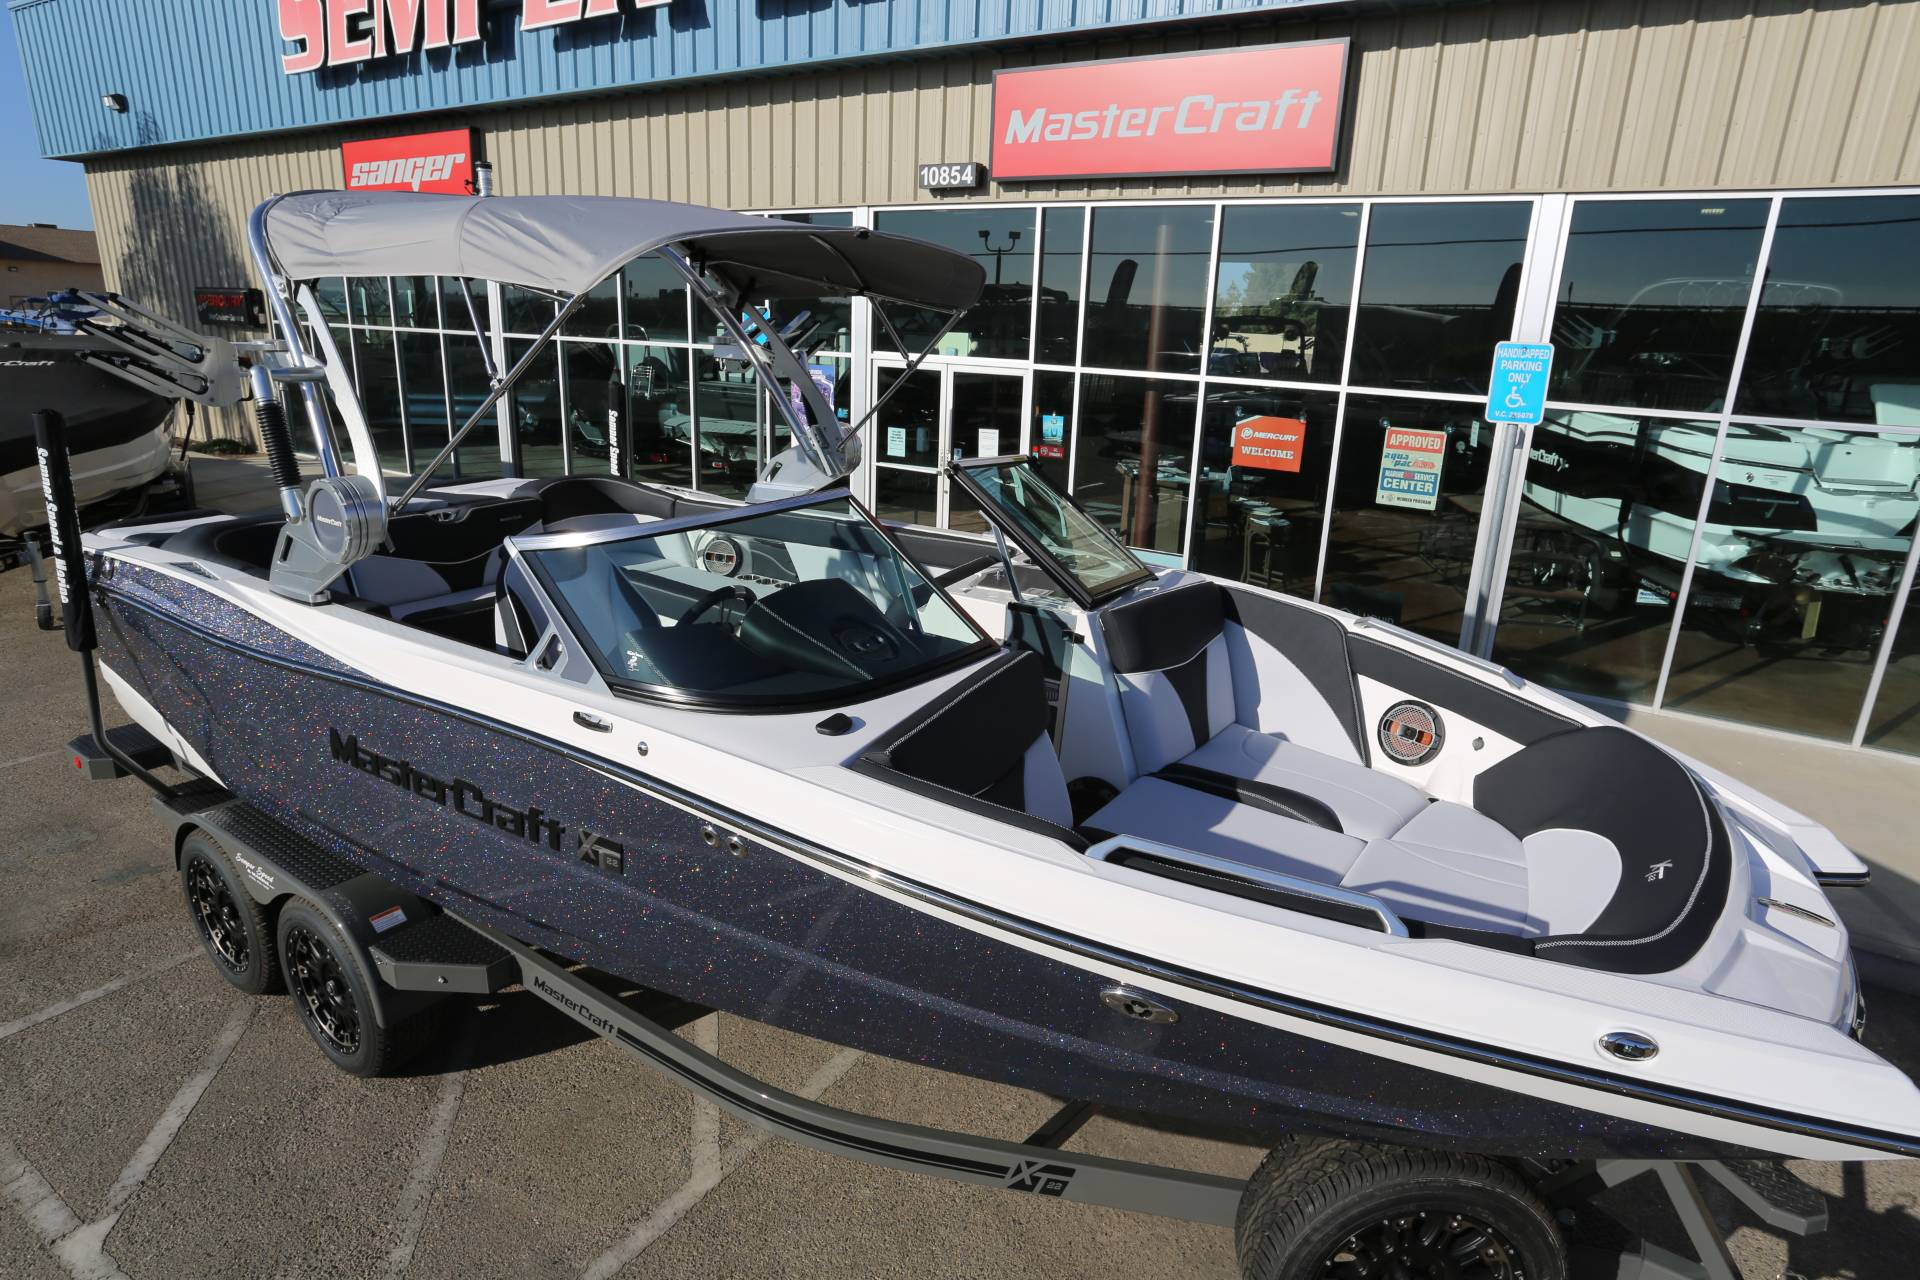 2021 Mastercraft XT22 in Madera, California - Photo 5